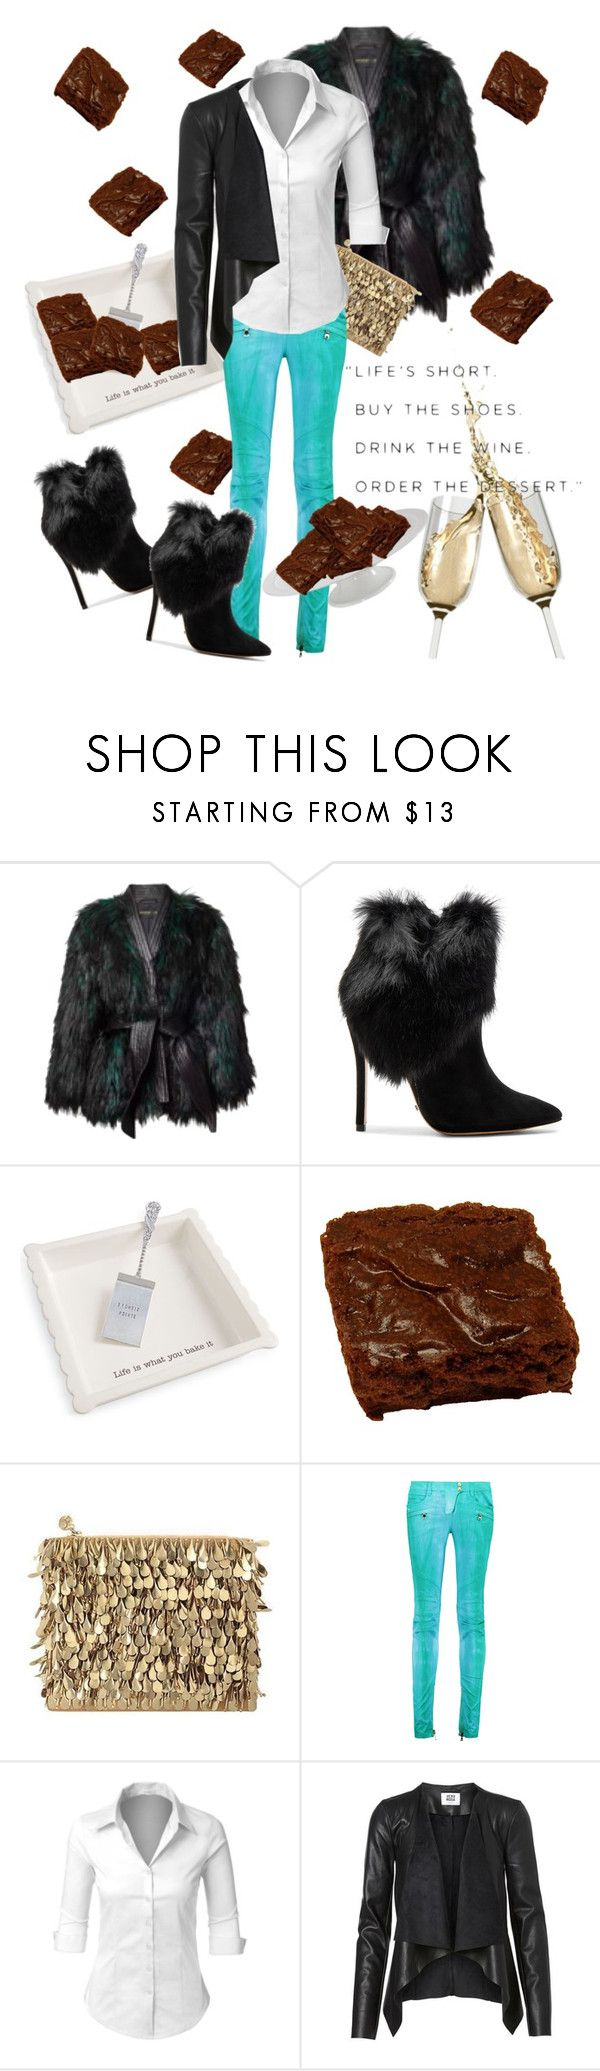 """""""Define """"Dessert"""""""" by april-wilson-nolen ❤ liked on Polyvore featuring Balmain, Schutz, Mud Pie, Forest of Chintz, LE3NO and Home Decorators Collection"""